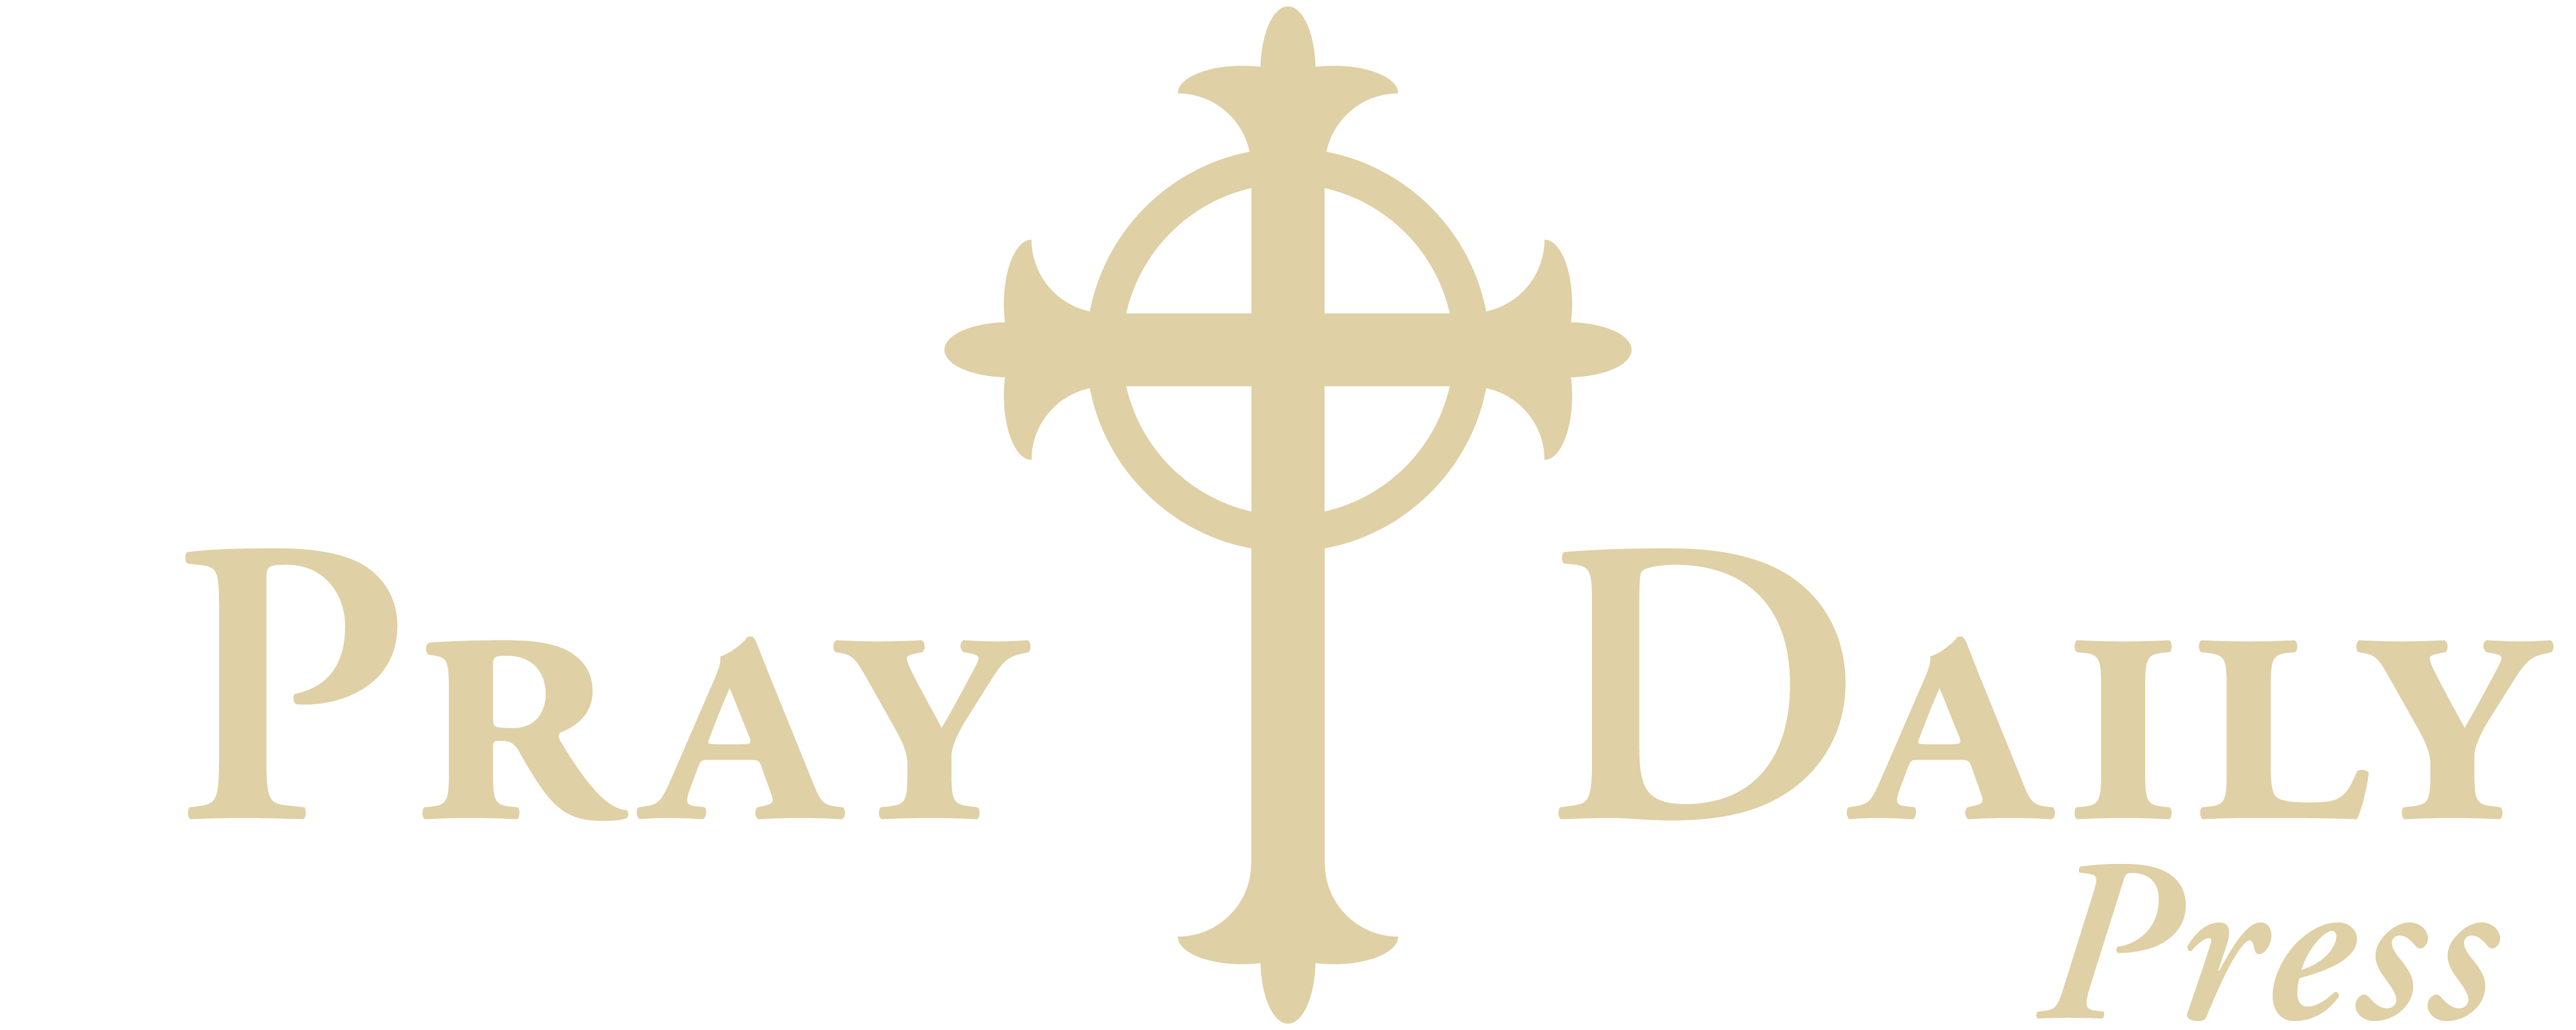 Pray Daily Press